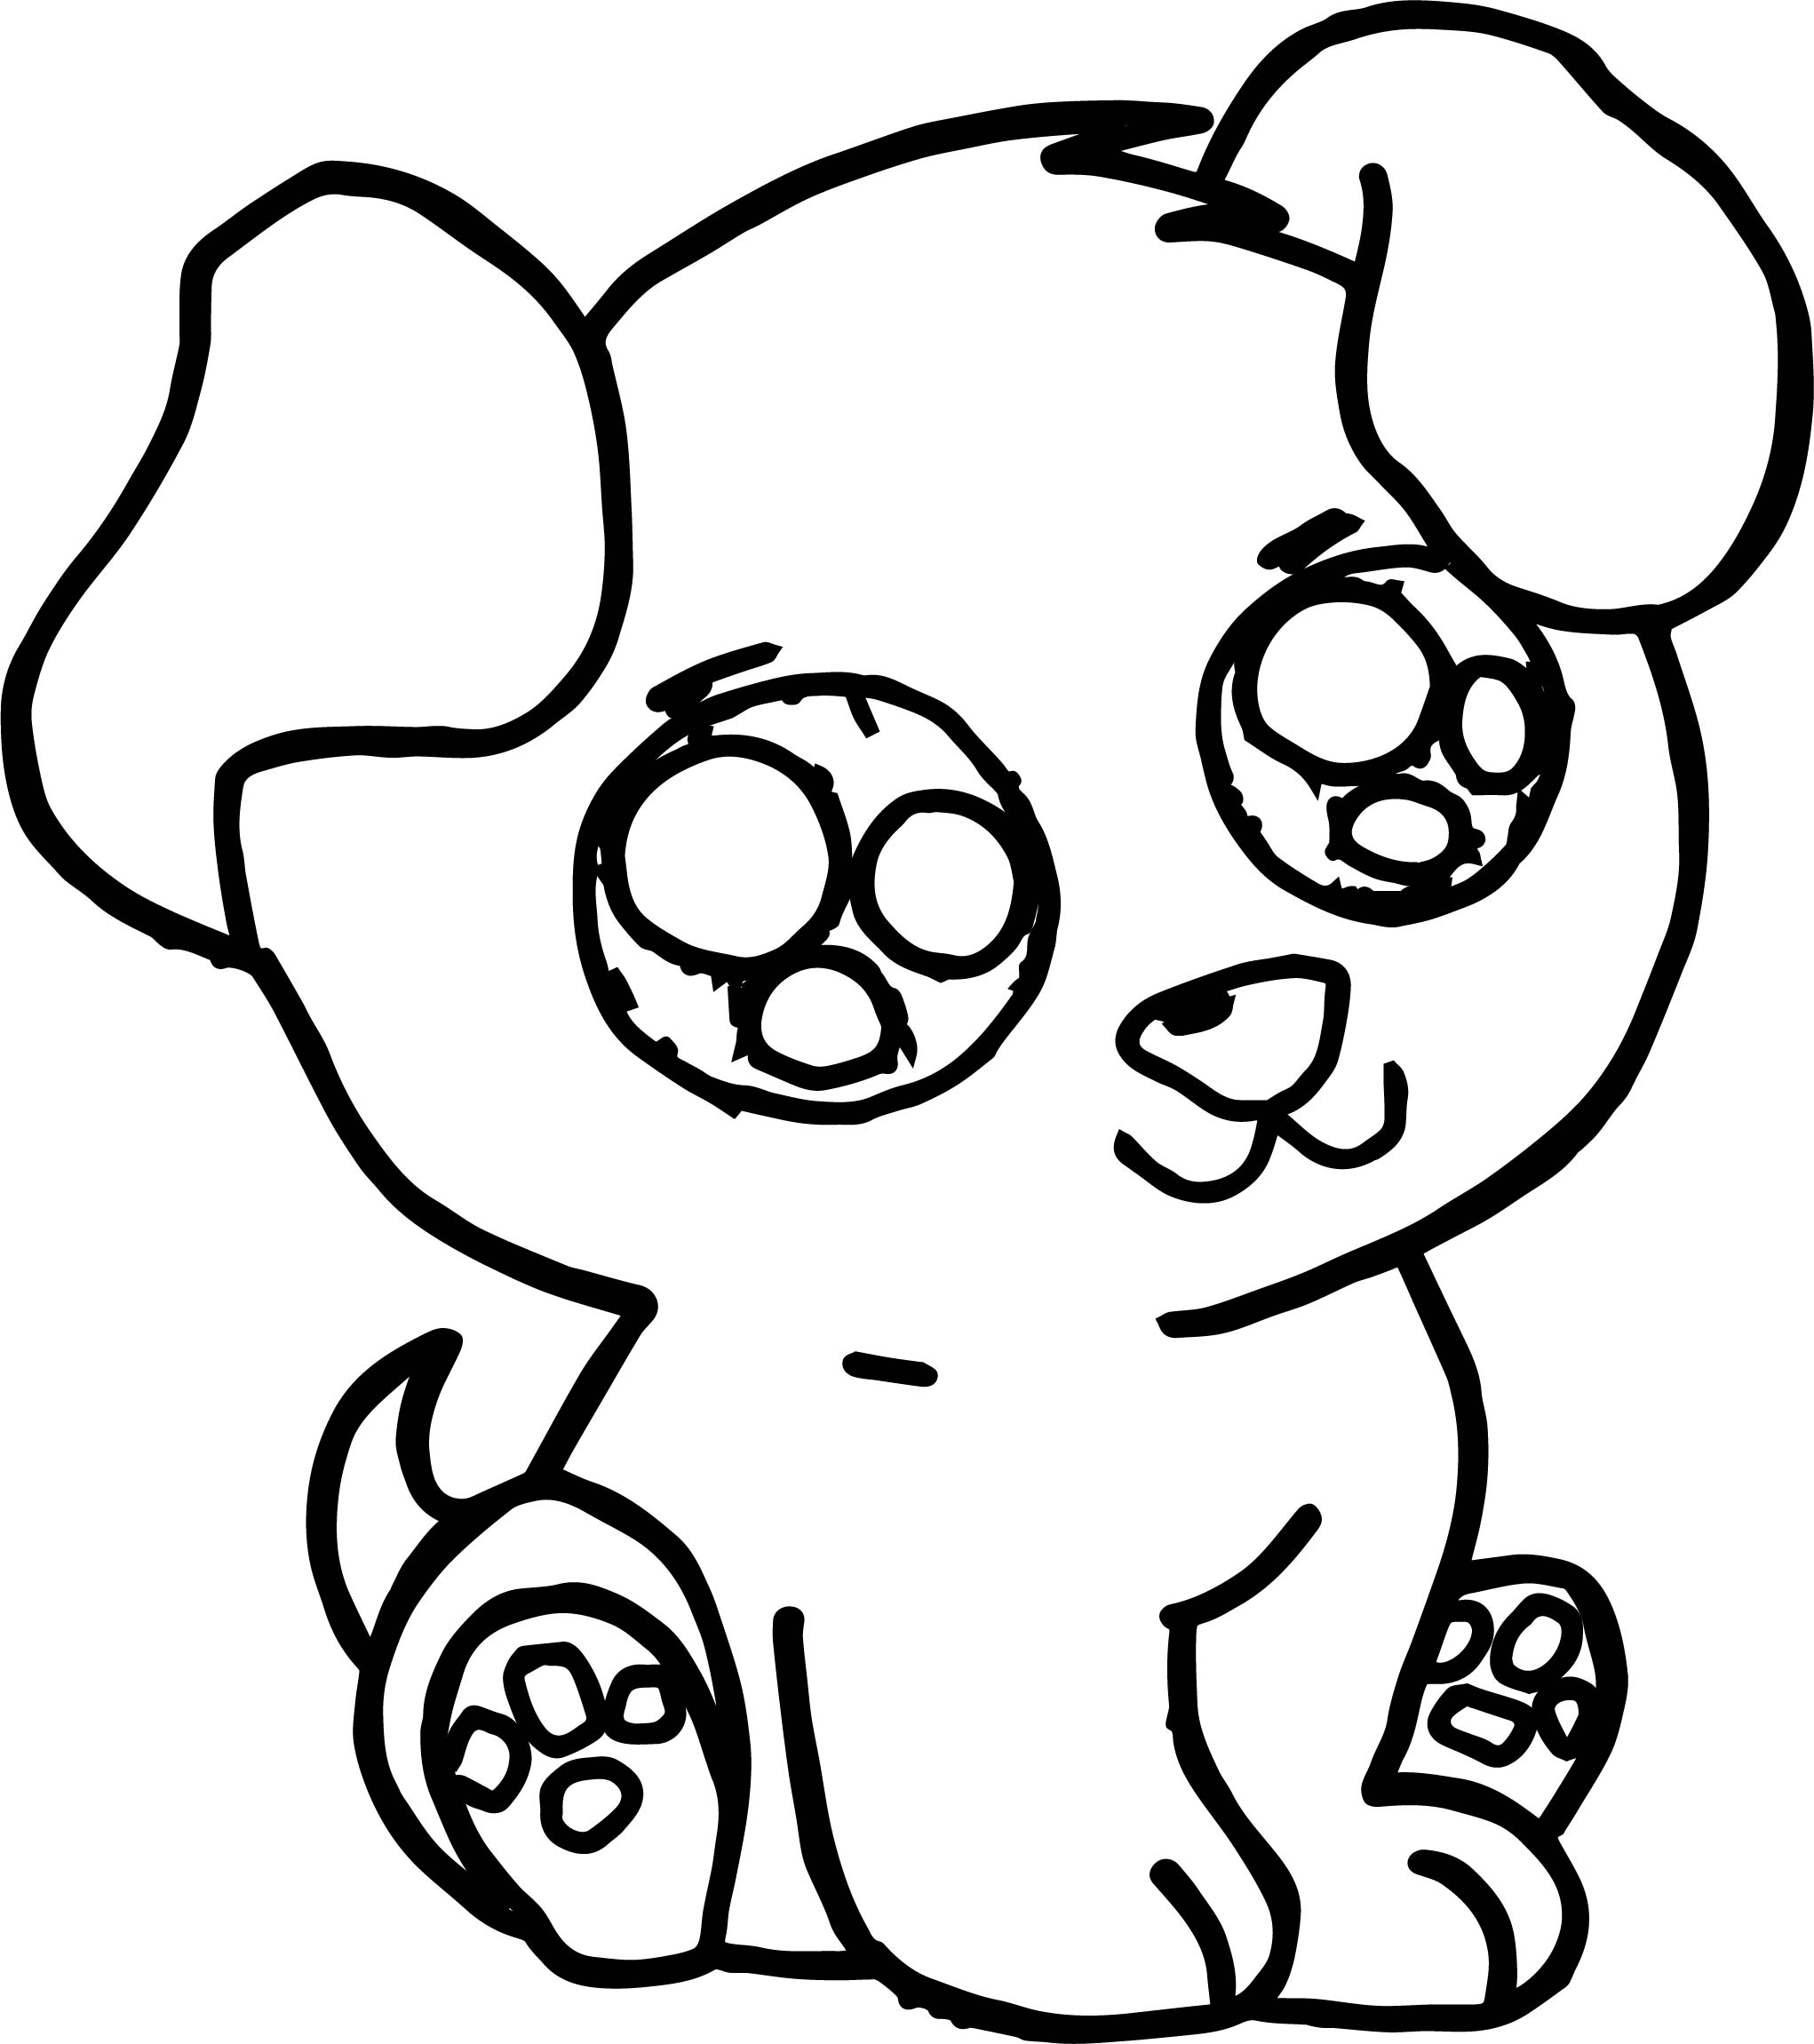 Cute Puppy Free Images Puppy Dog Coloring Page | Wecoloringpage